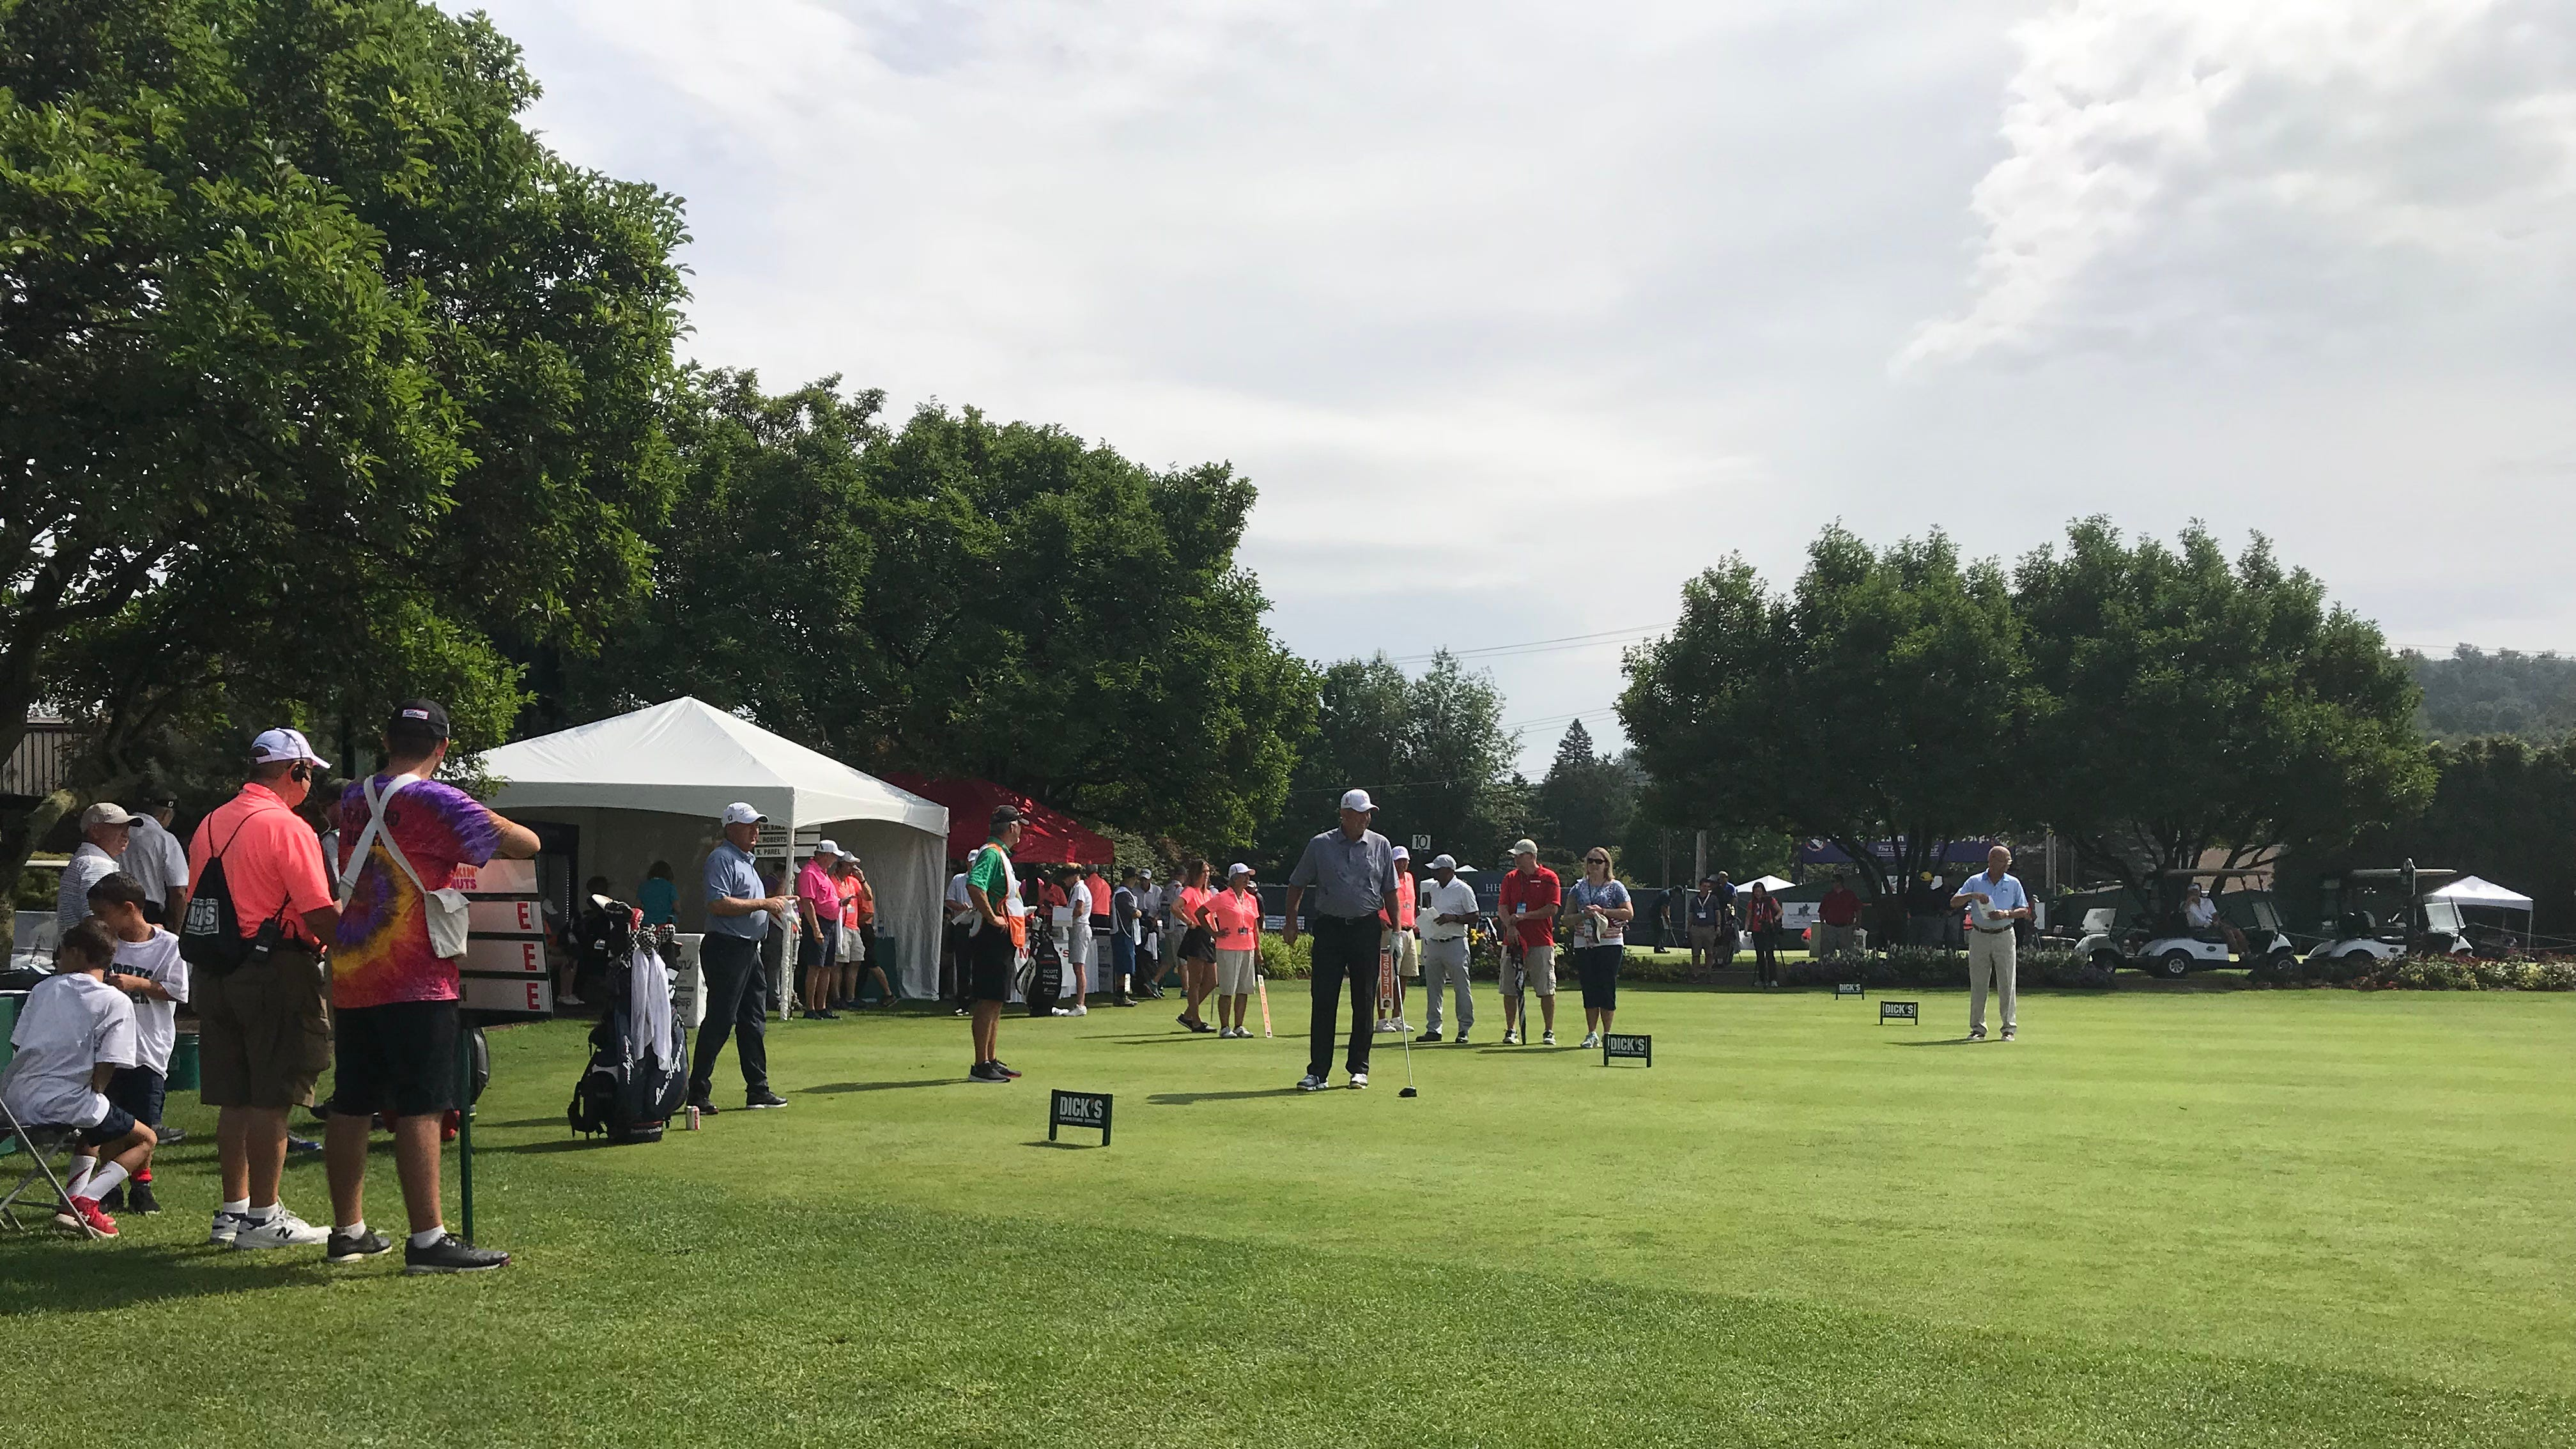 Groups of golfers began teeing off at about 10 a.m. Friday.